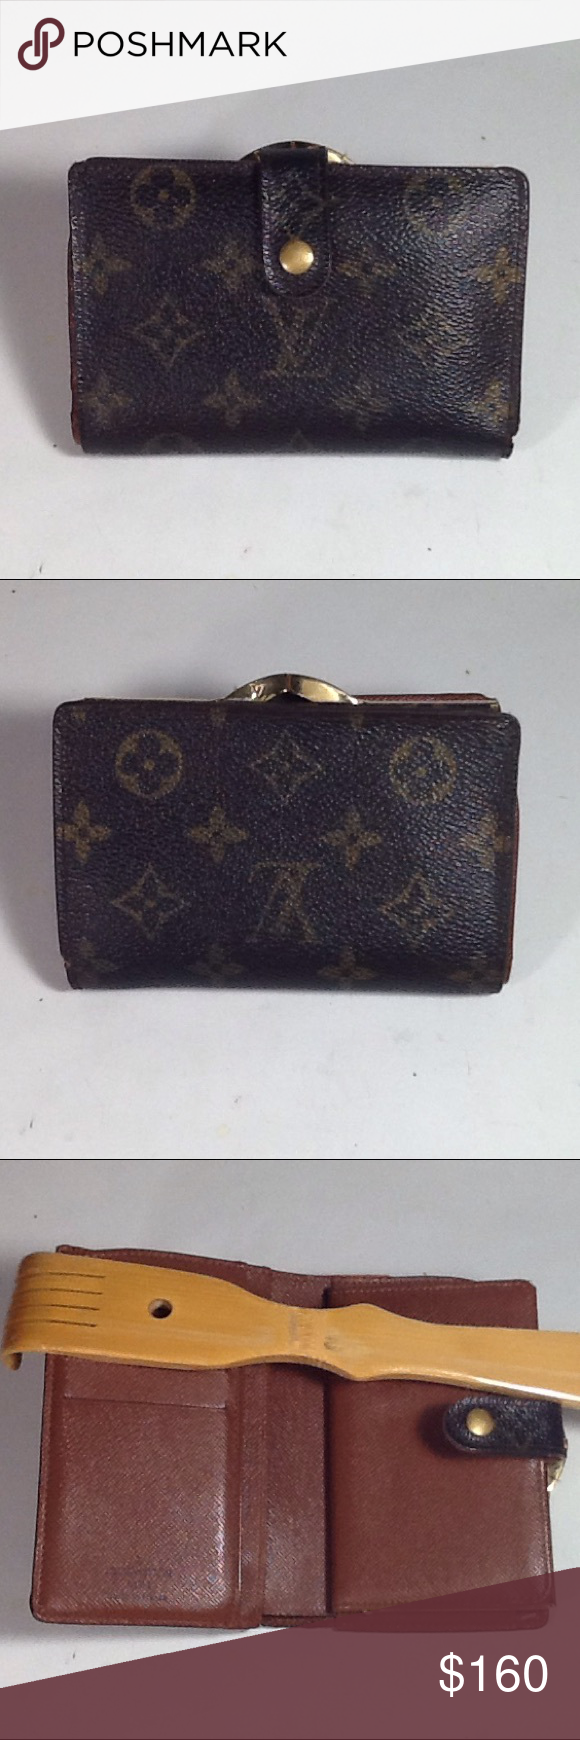 Authentic Louis Vuitton Porte Monaire Brown Wallet Leather and canvas showed minimum signs of used. The wallet was made in France with a date code MI 0068. The dimension is 3.5, 5 and 1. Louis Vuitton Accessories